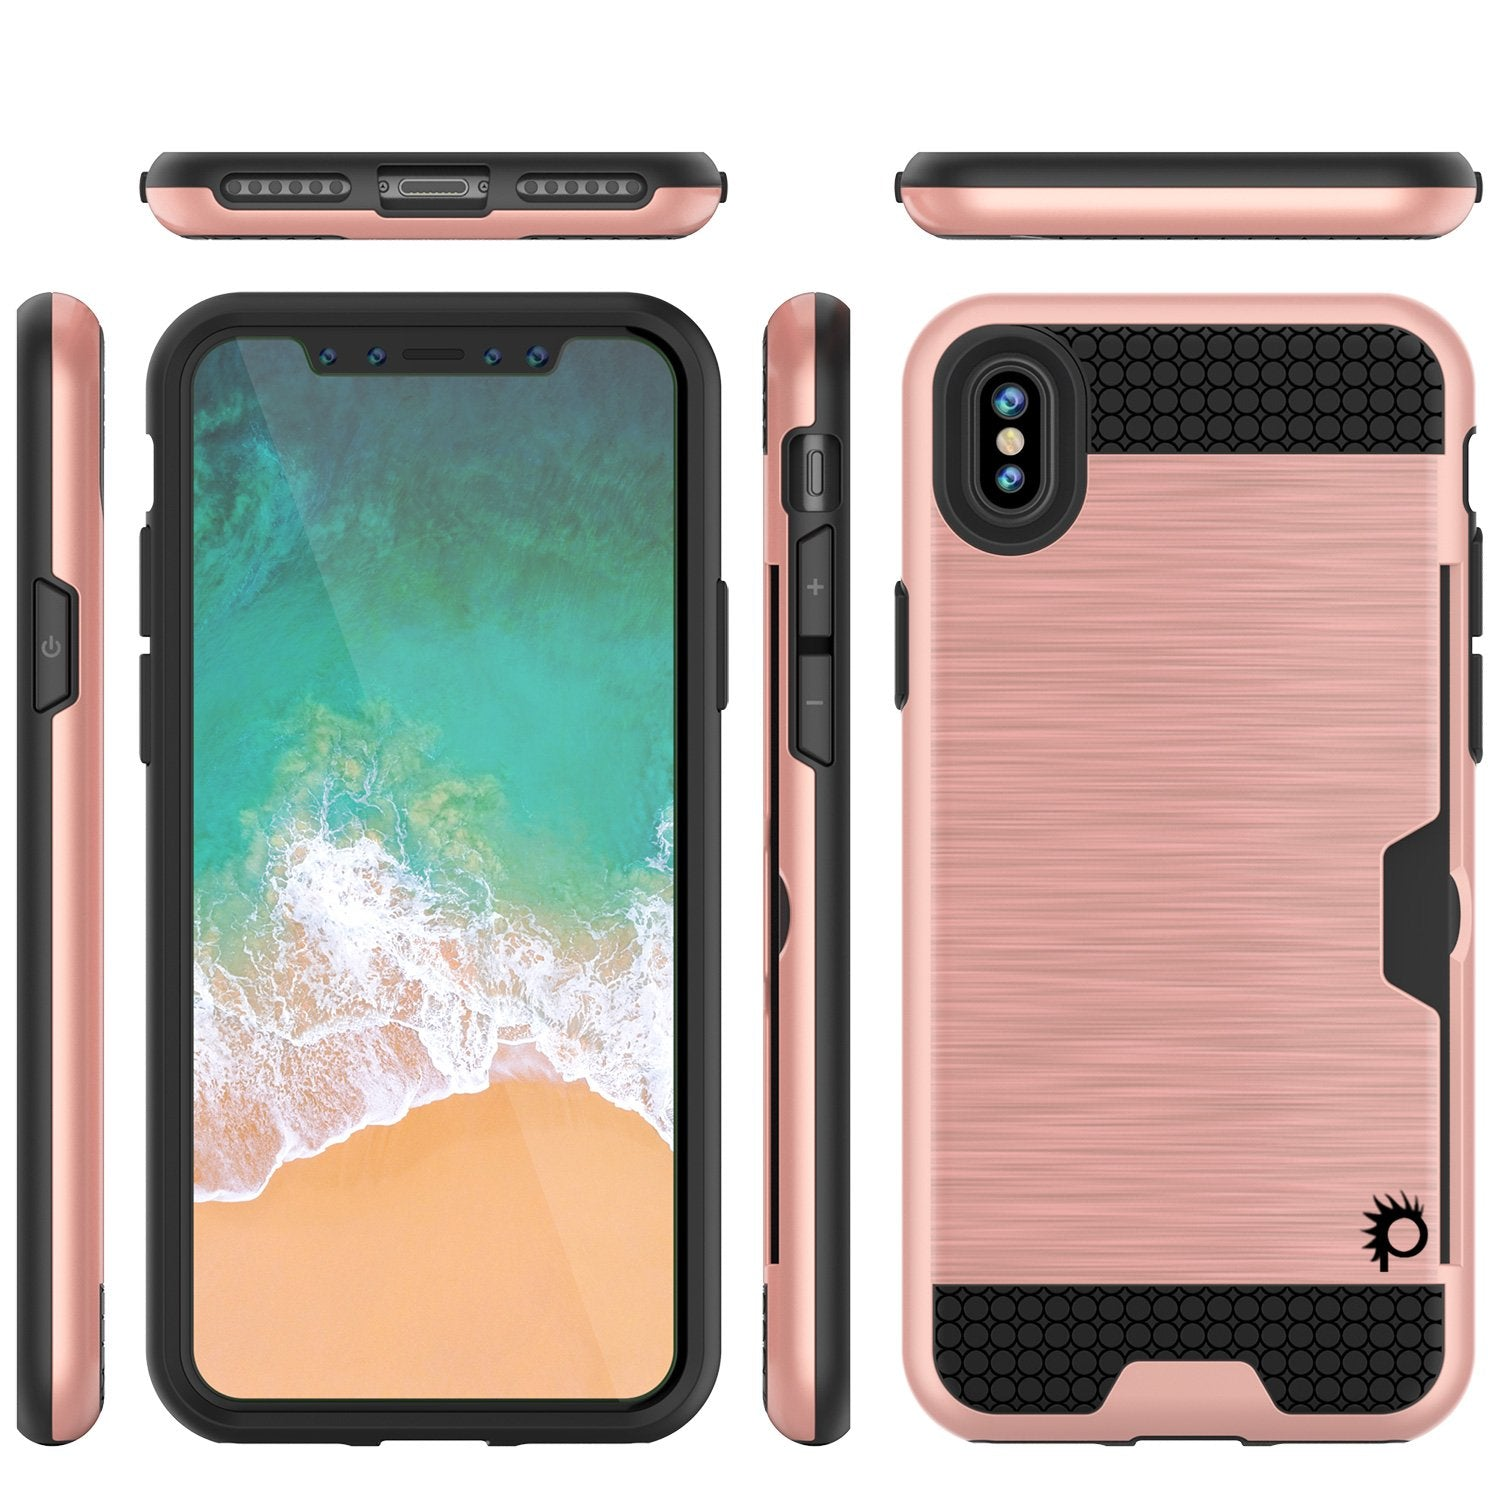 iPhone X Case, PUNKcase [SLOT Series] Slim Fit Dual-Layer Armor Cover & Tempered Glass PUNKSHIELD Screen Protector for Apple iPhone X [Rose Gold]